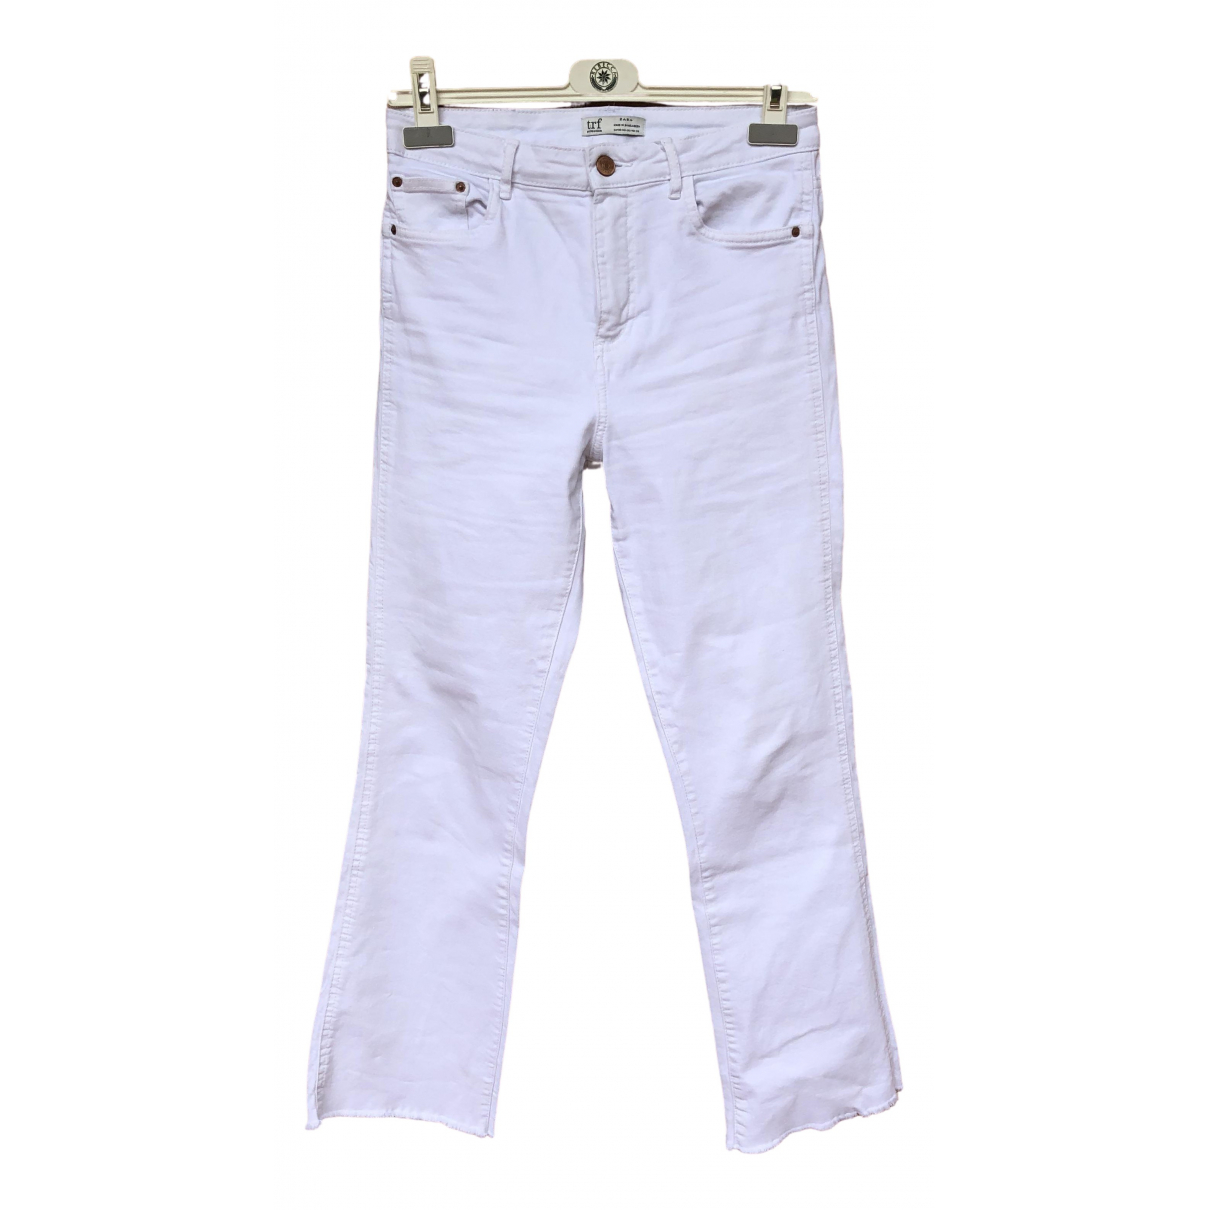 Zara \N White Denim - Jeans Jeans for Women 26 US